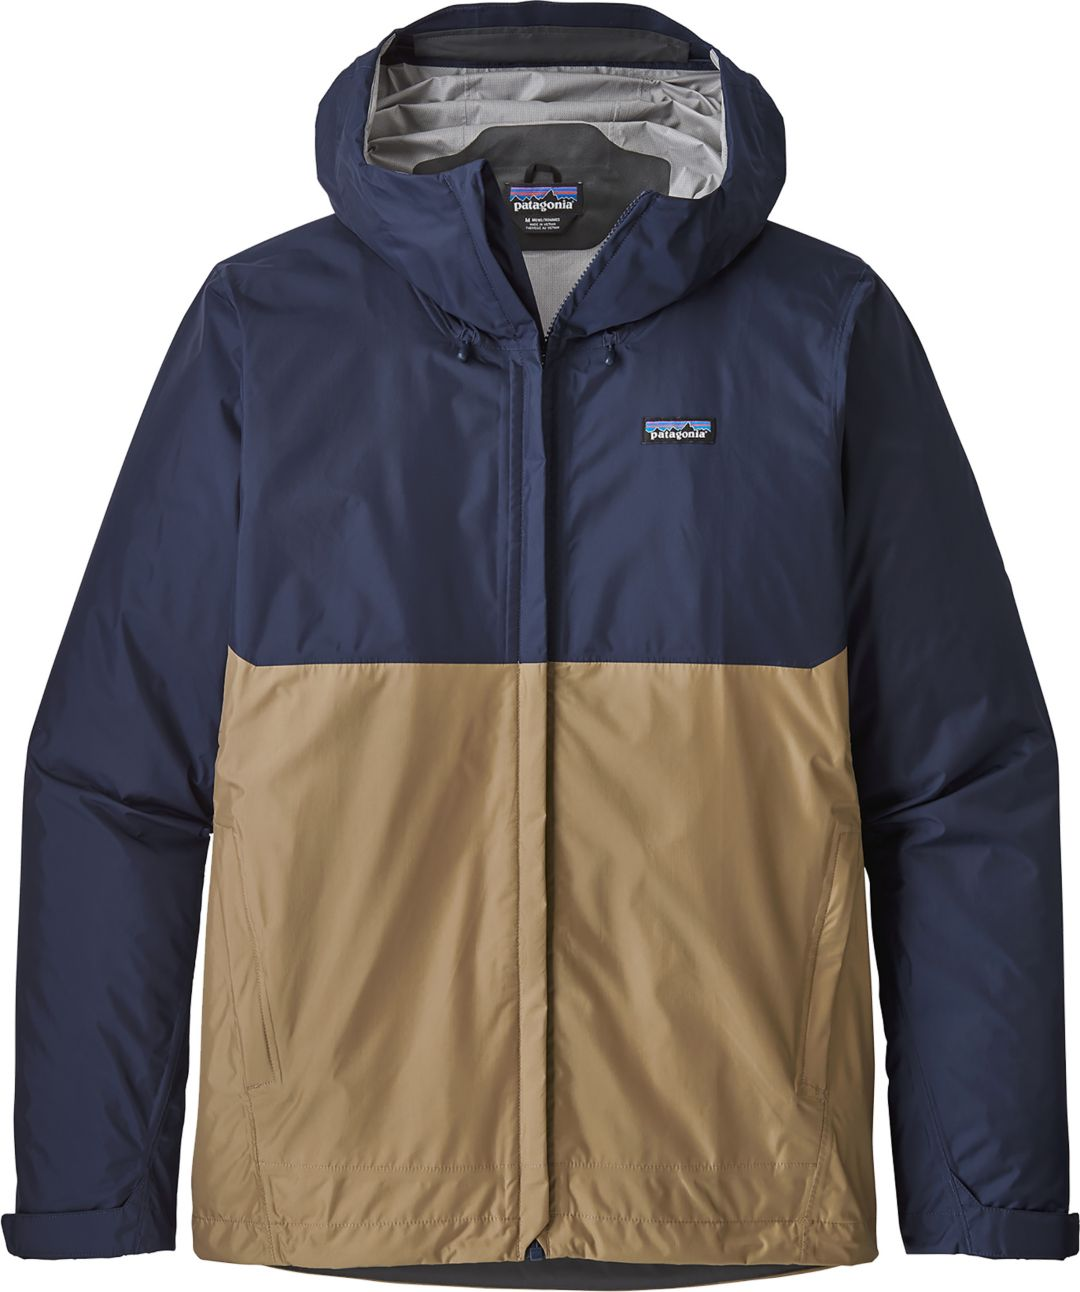 60% cheap limited style full range of specifications Patagonia Men's Torrentshell Shell Jacket